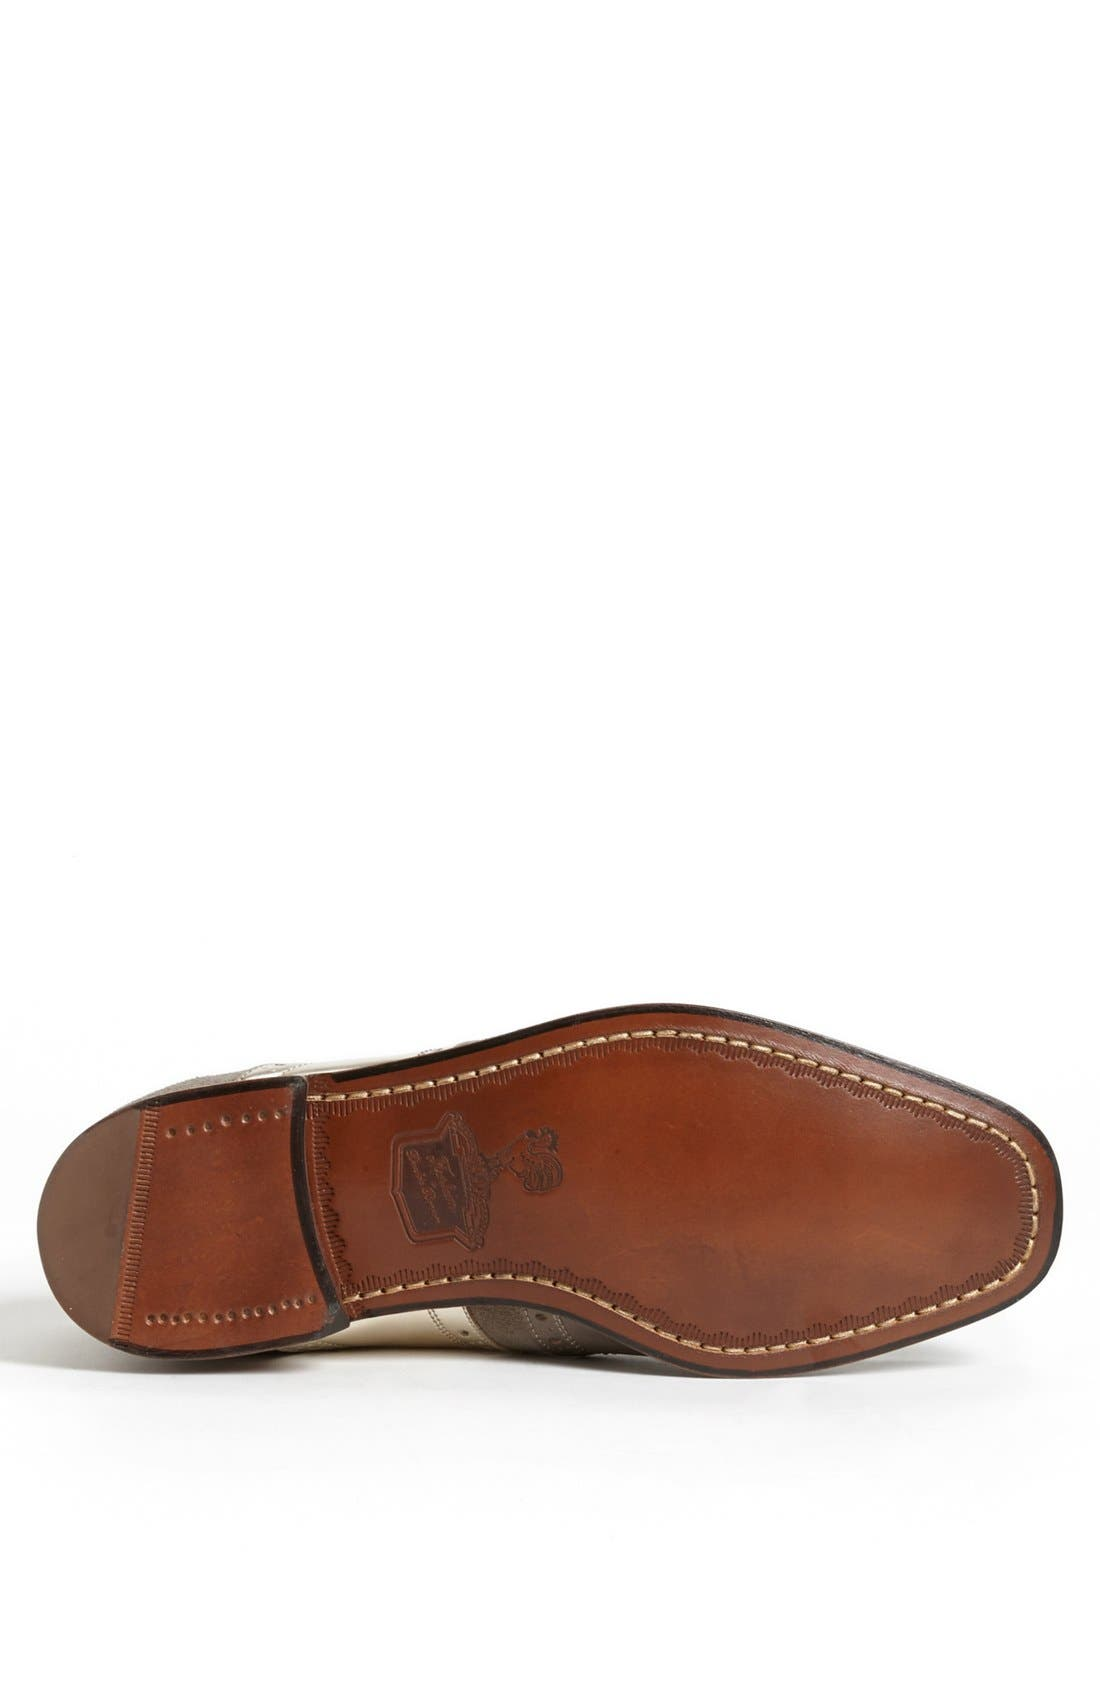 Alternate Image 4  - Florsheim by Duckie Brown 'Wing' Saddle Shoe